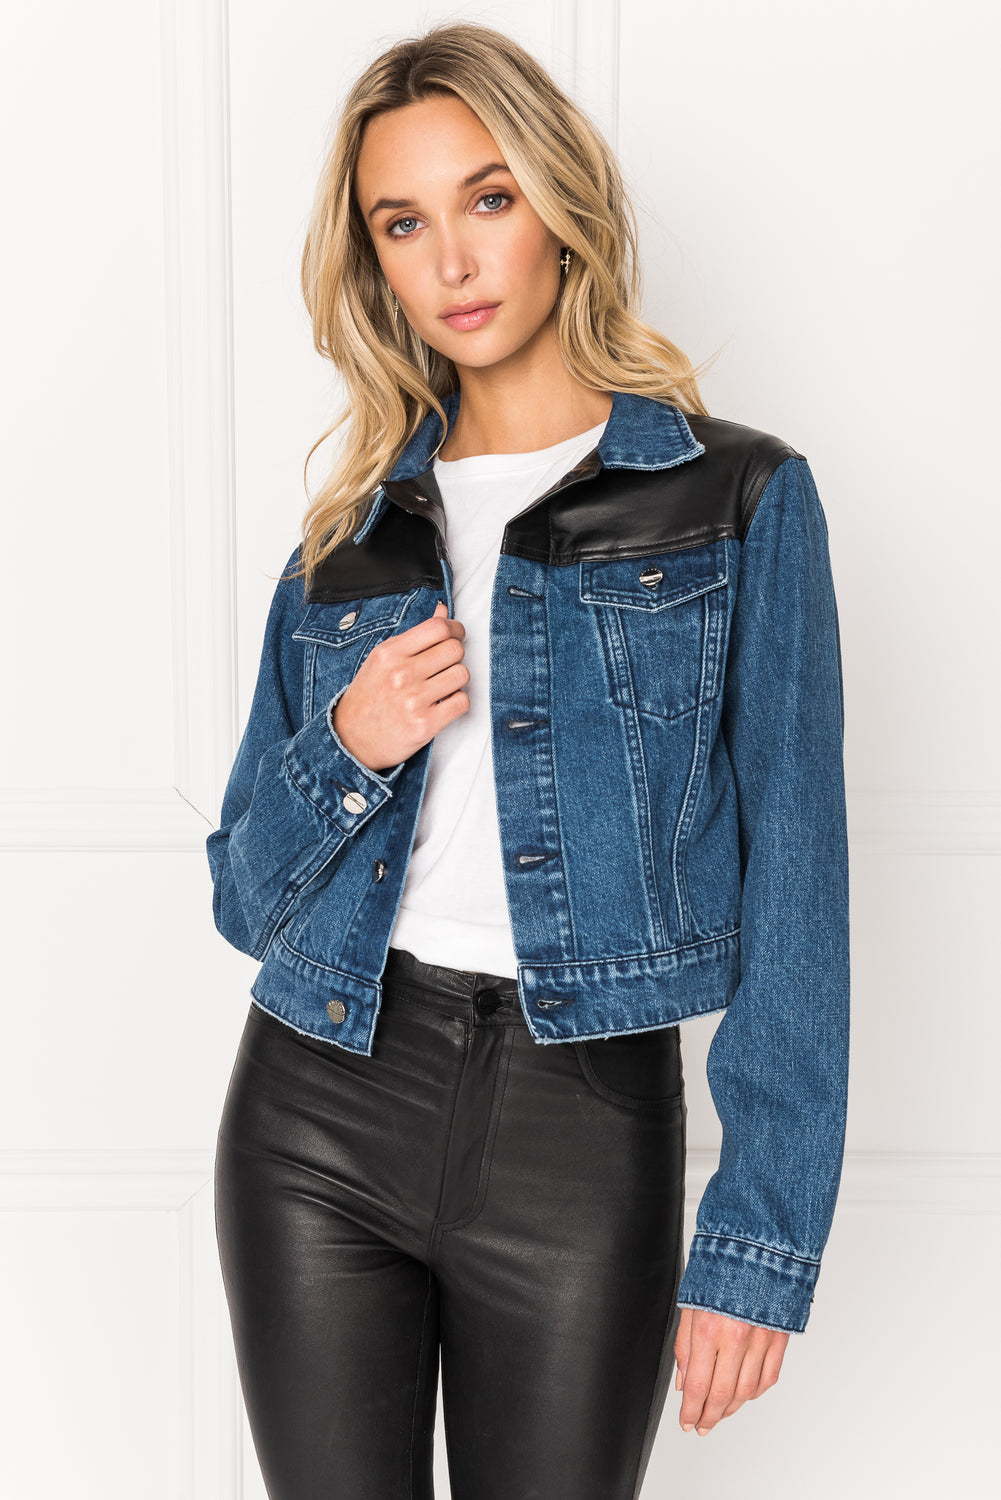 KARLY Blue & Black Leather Trimmed Jean Jacket